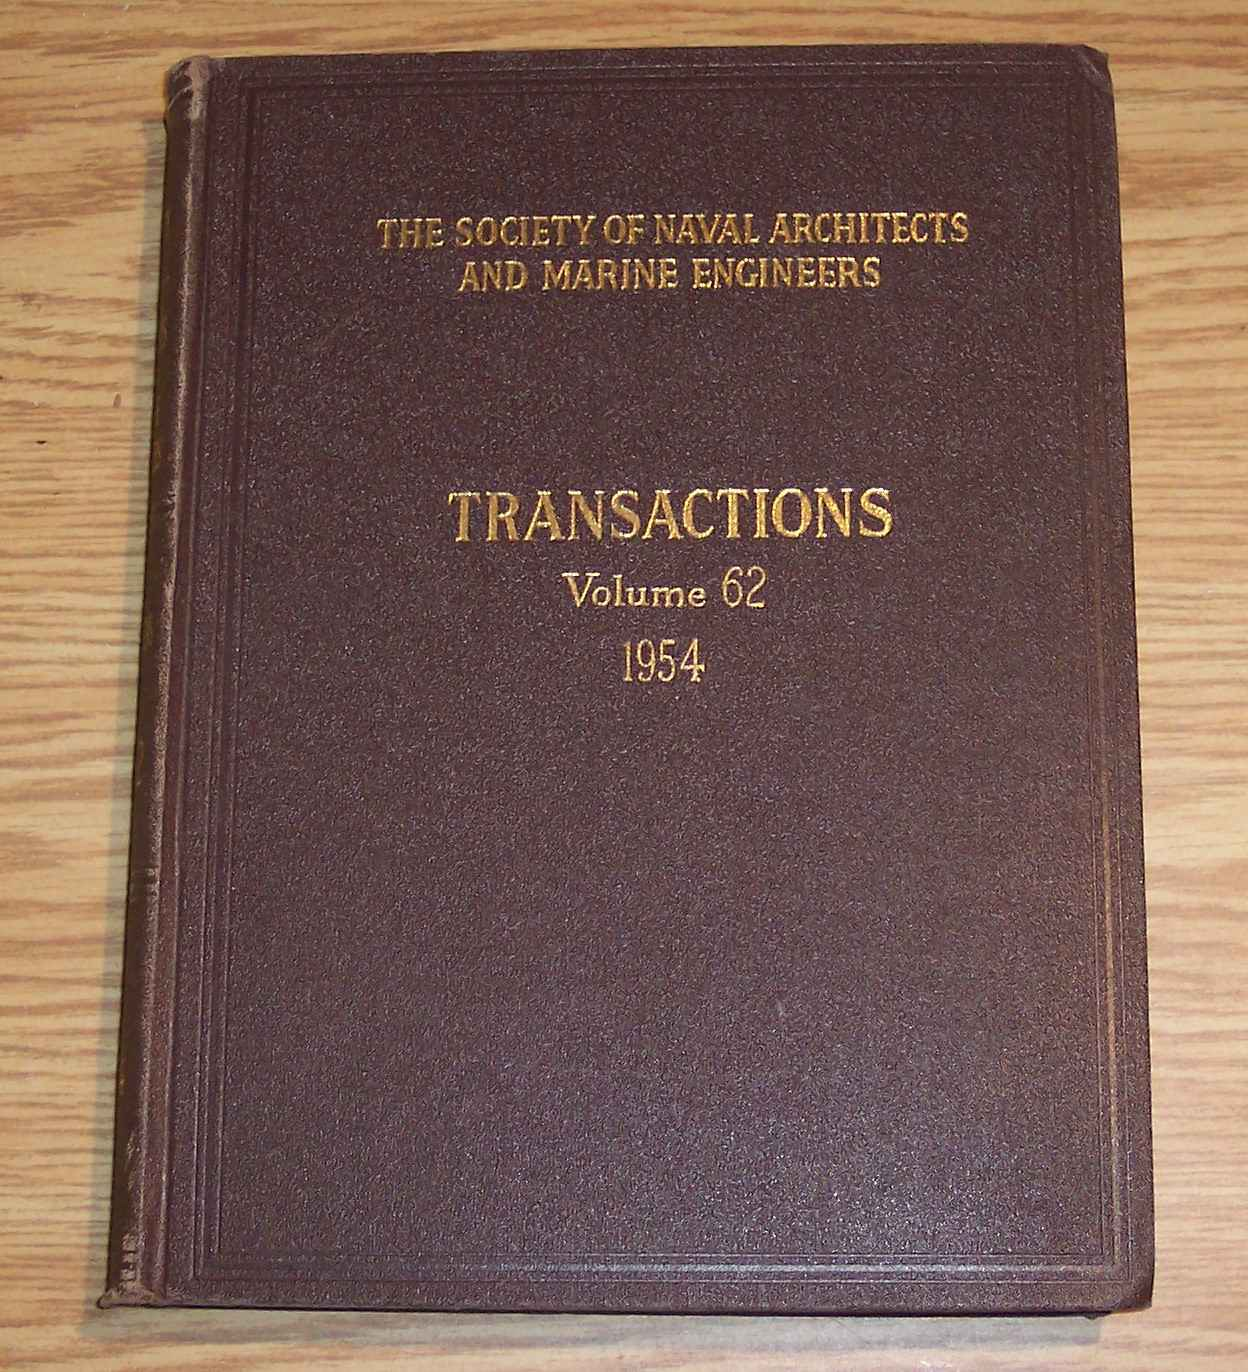 Image for The Society of Naval Architects and Marine Engineers Transactions Volume 62 1954